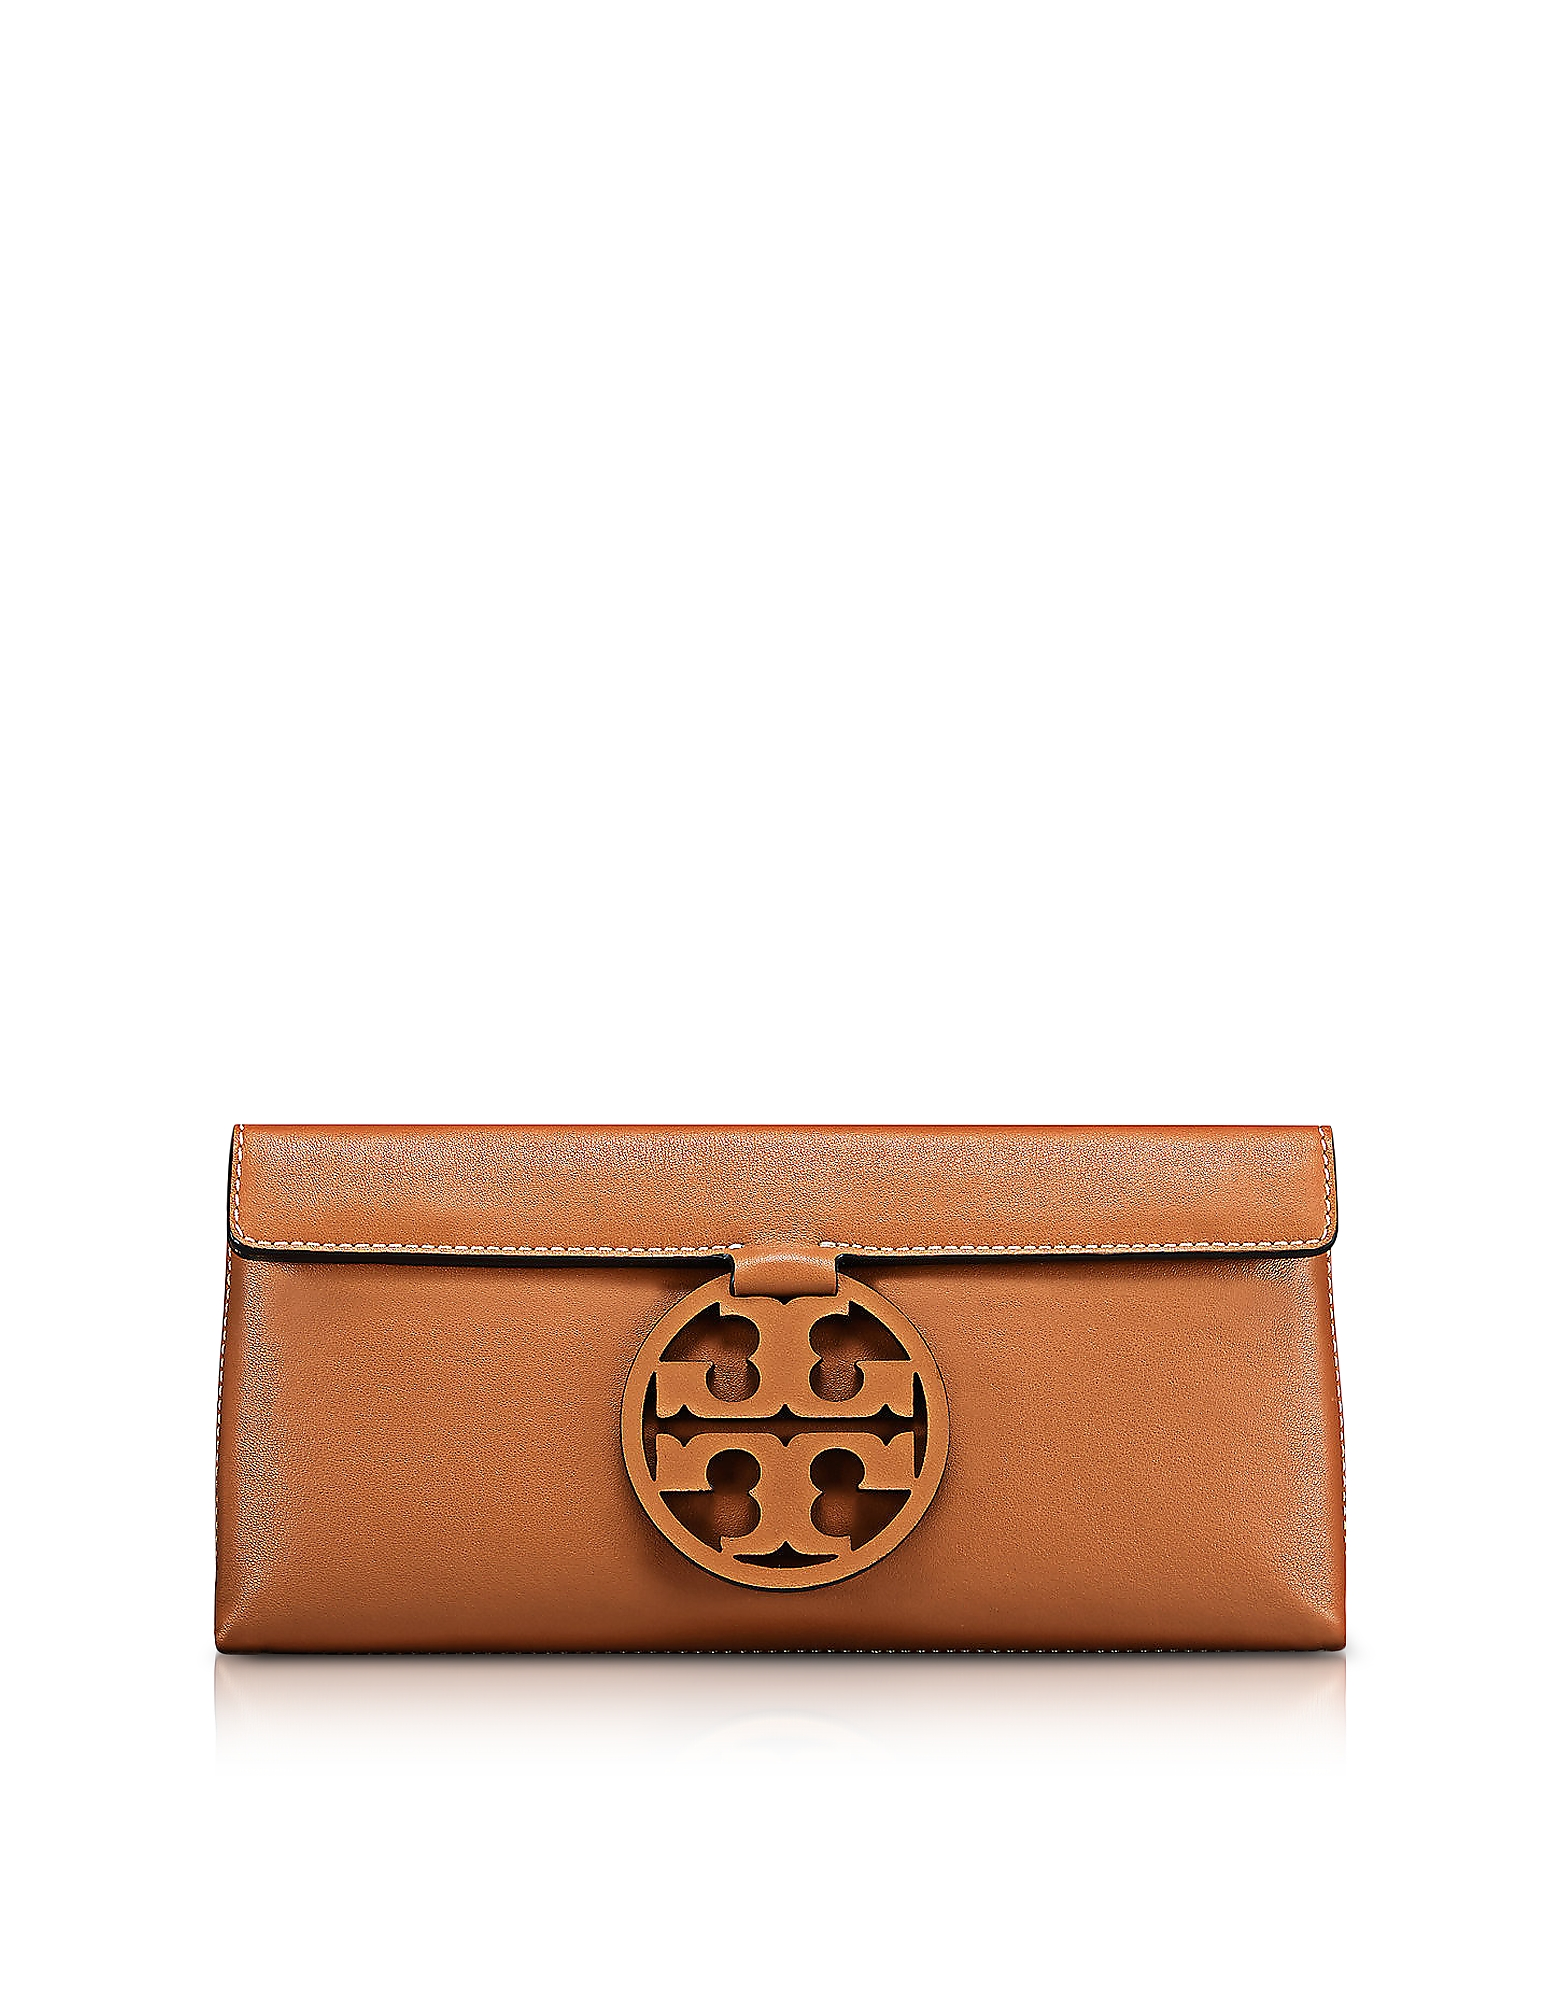 Tory Burch Handbags, Miller New Cuoio Leather Clutch